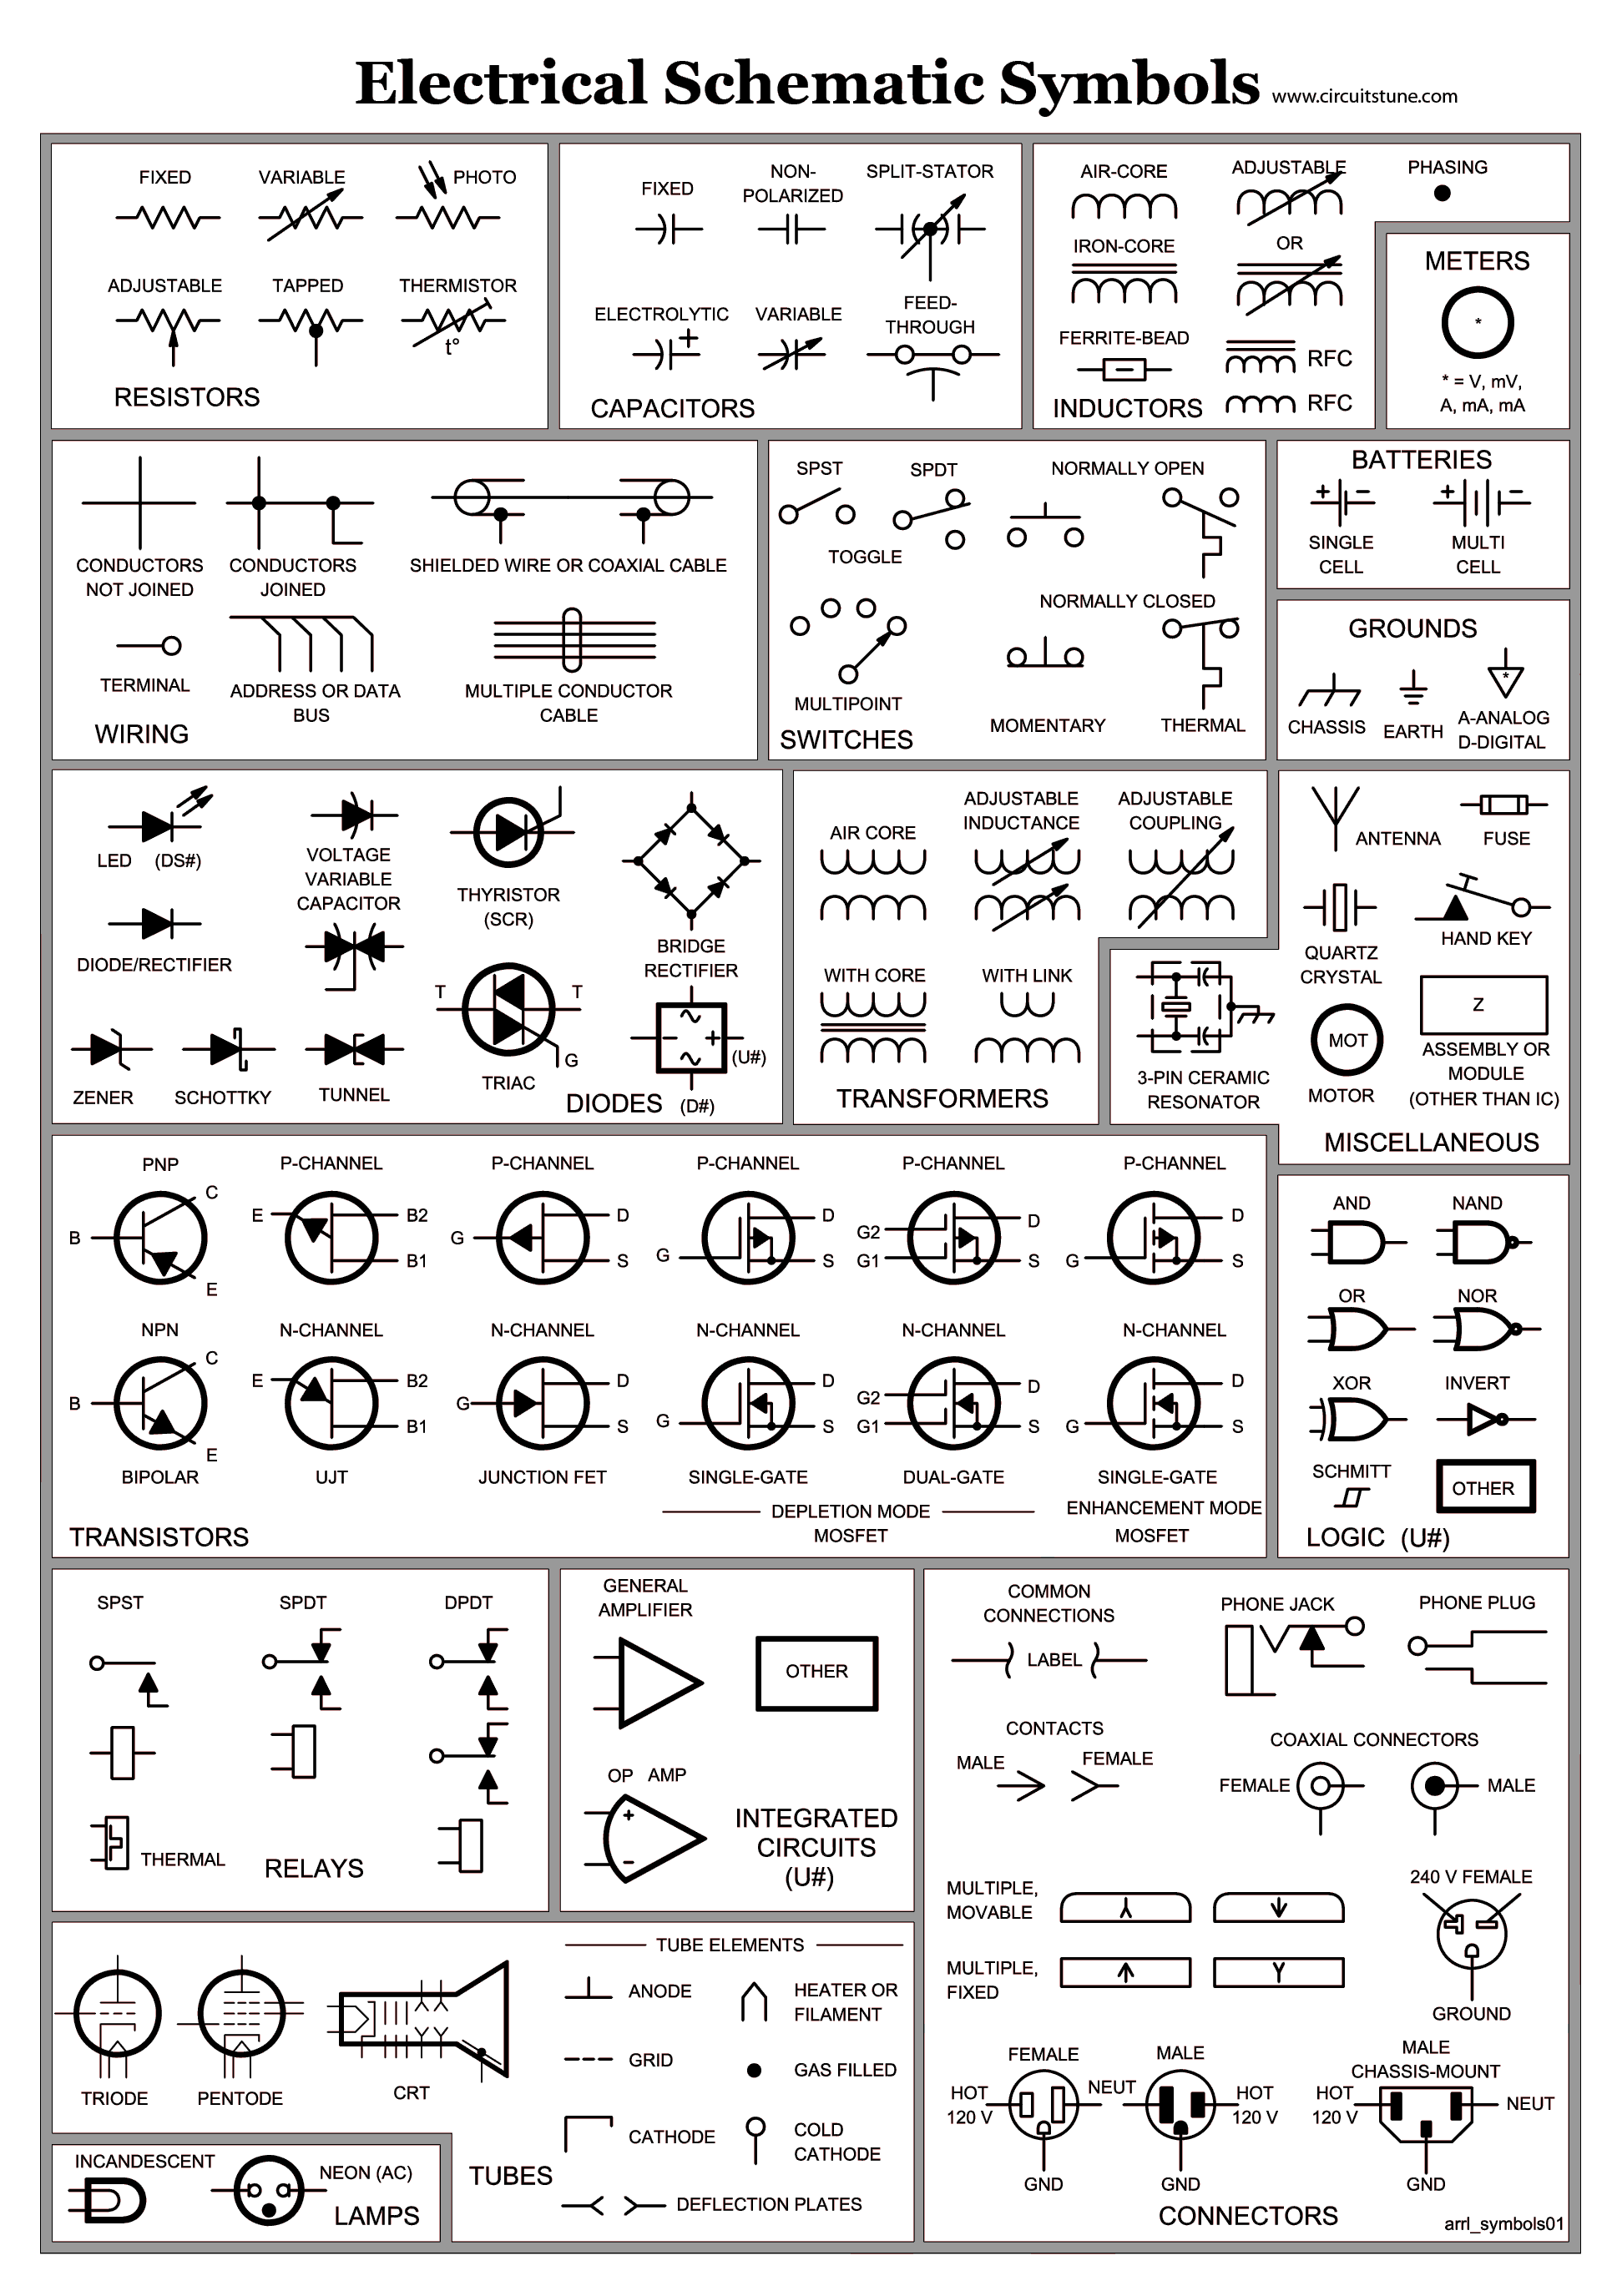 electrical schematic symbols wire diagram symbols automotive wiring rh pinterest com electrical drawing legend electrical drawing legend